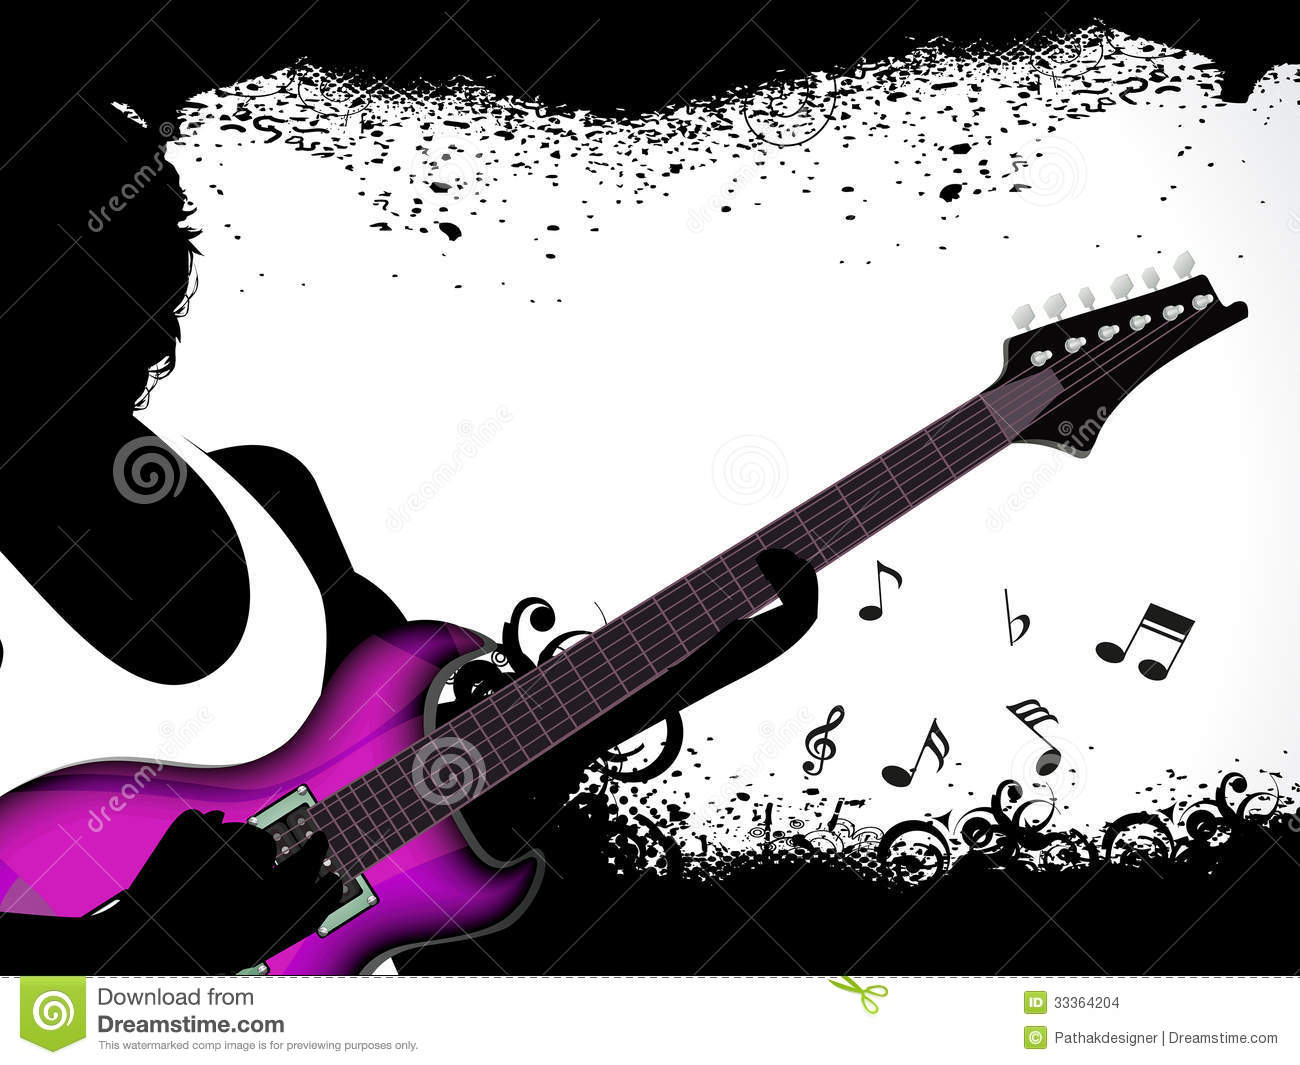 Pics photos rock concert background - Abstract Grungy Rock Concert Background Stock Images